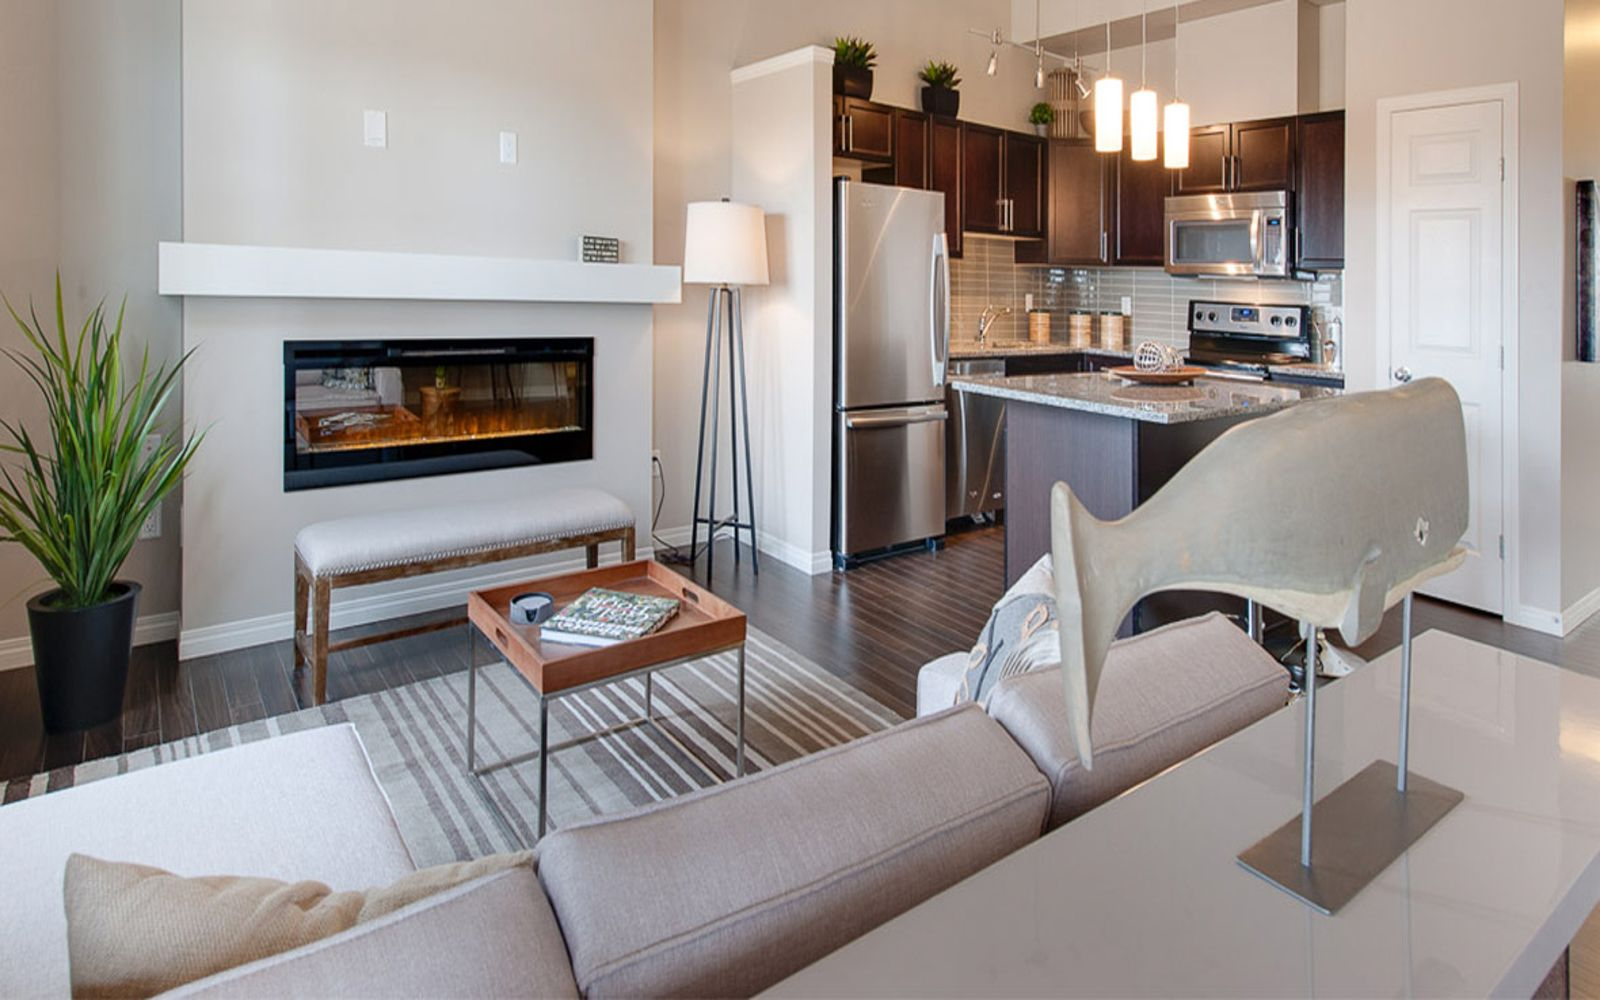 living-room-kitchen-mozart-ab-edmonton